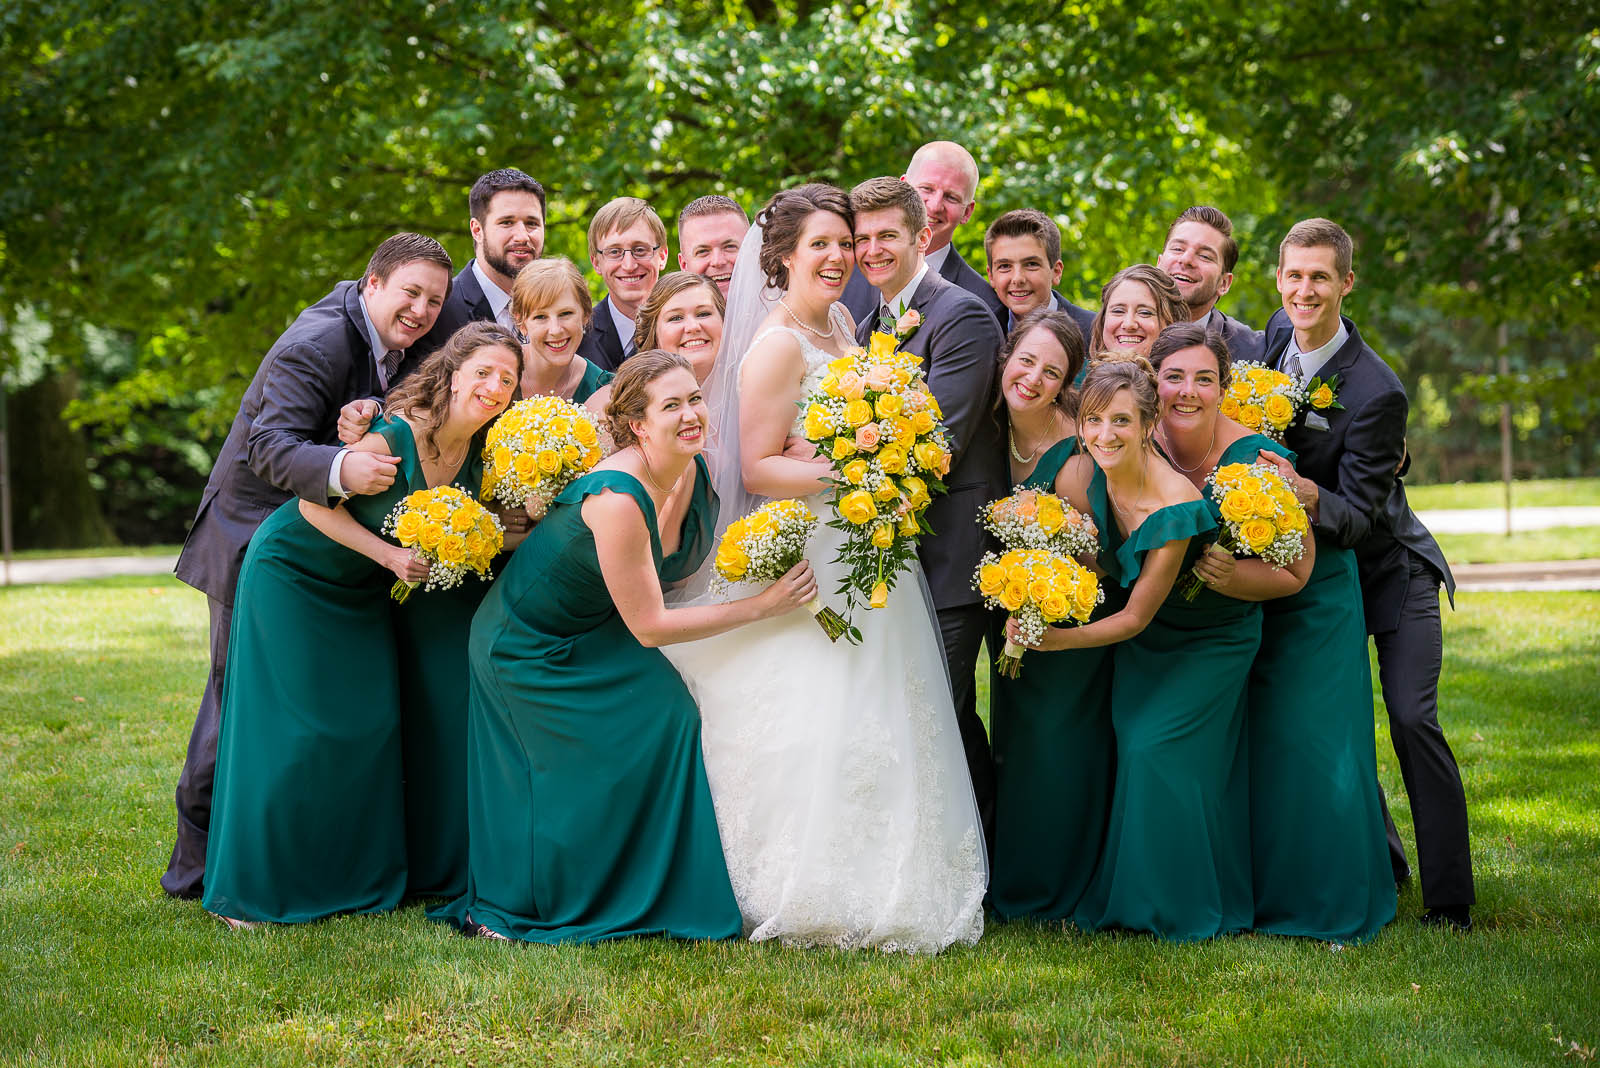 Eric_and_Christy_Photography_Blog_Wedding_Kelly_Michael-18